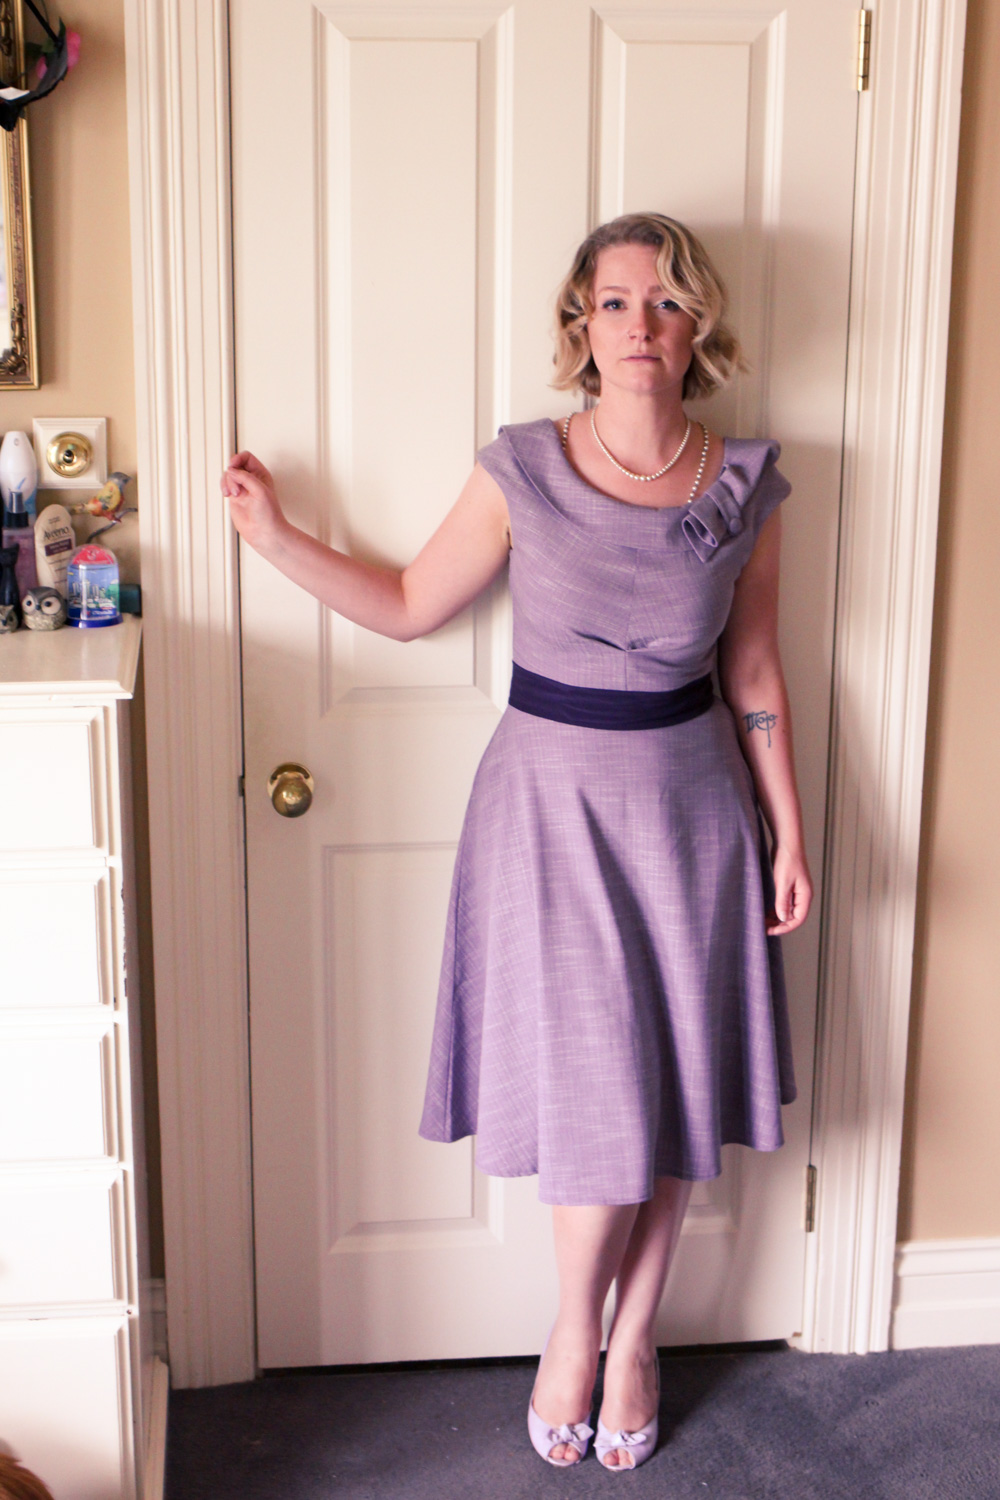 @findingfemme wears Voodoo Vixen lilac dress.